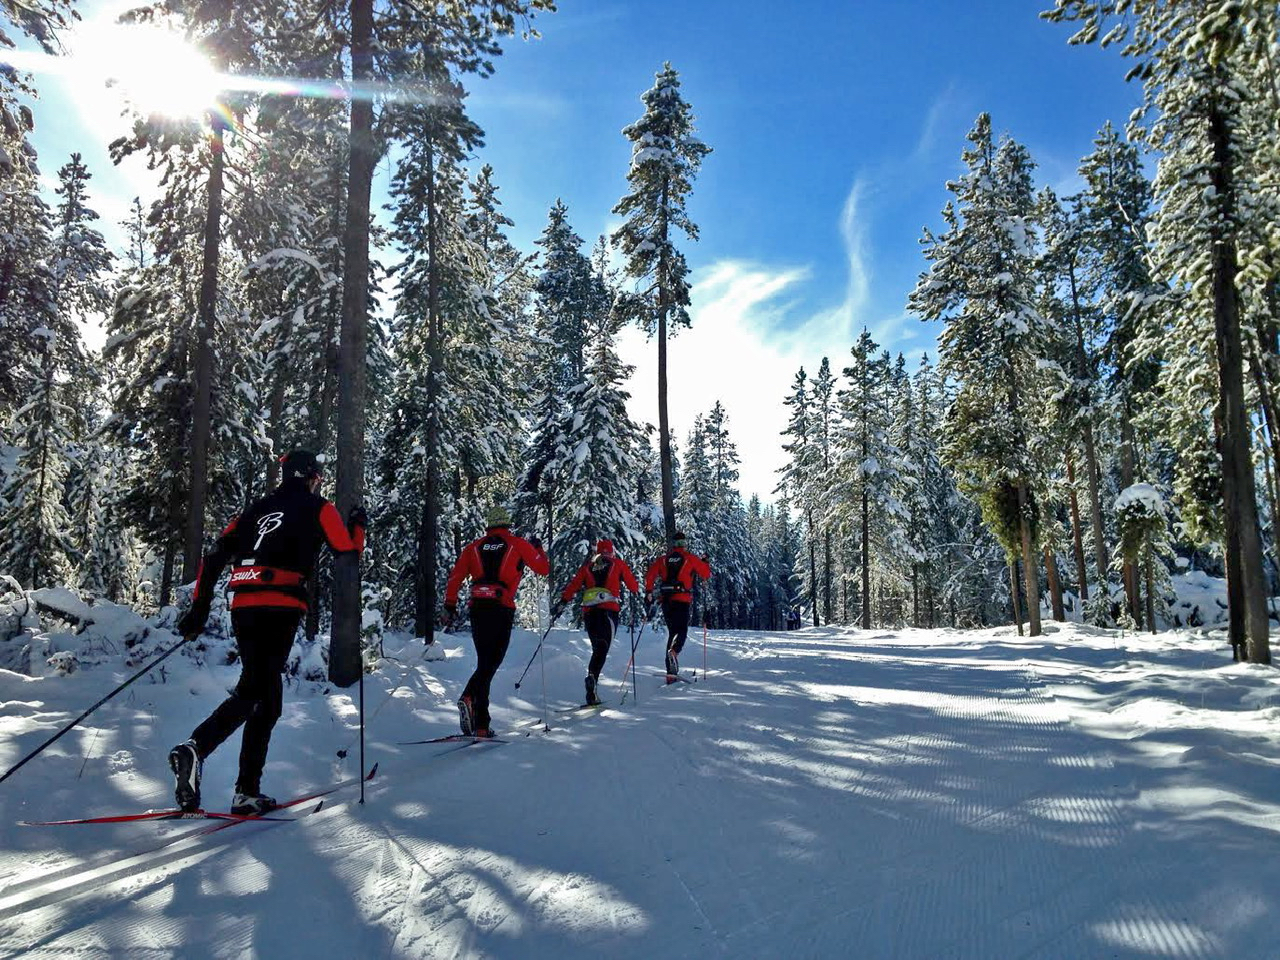 https://fasterskier.com/wp-content/blogs.dir/1/files/2019/01/First-Ski-in-West-Yellowstone-2015.jpg